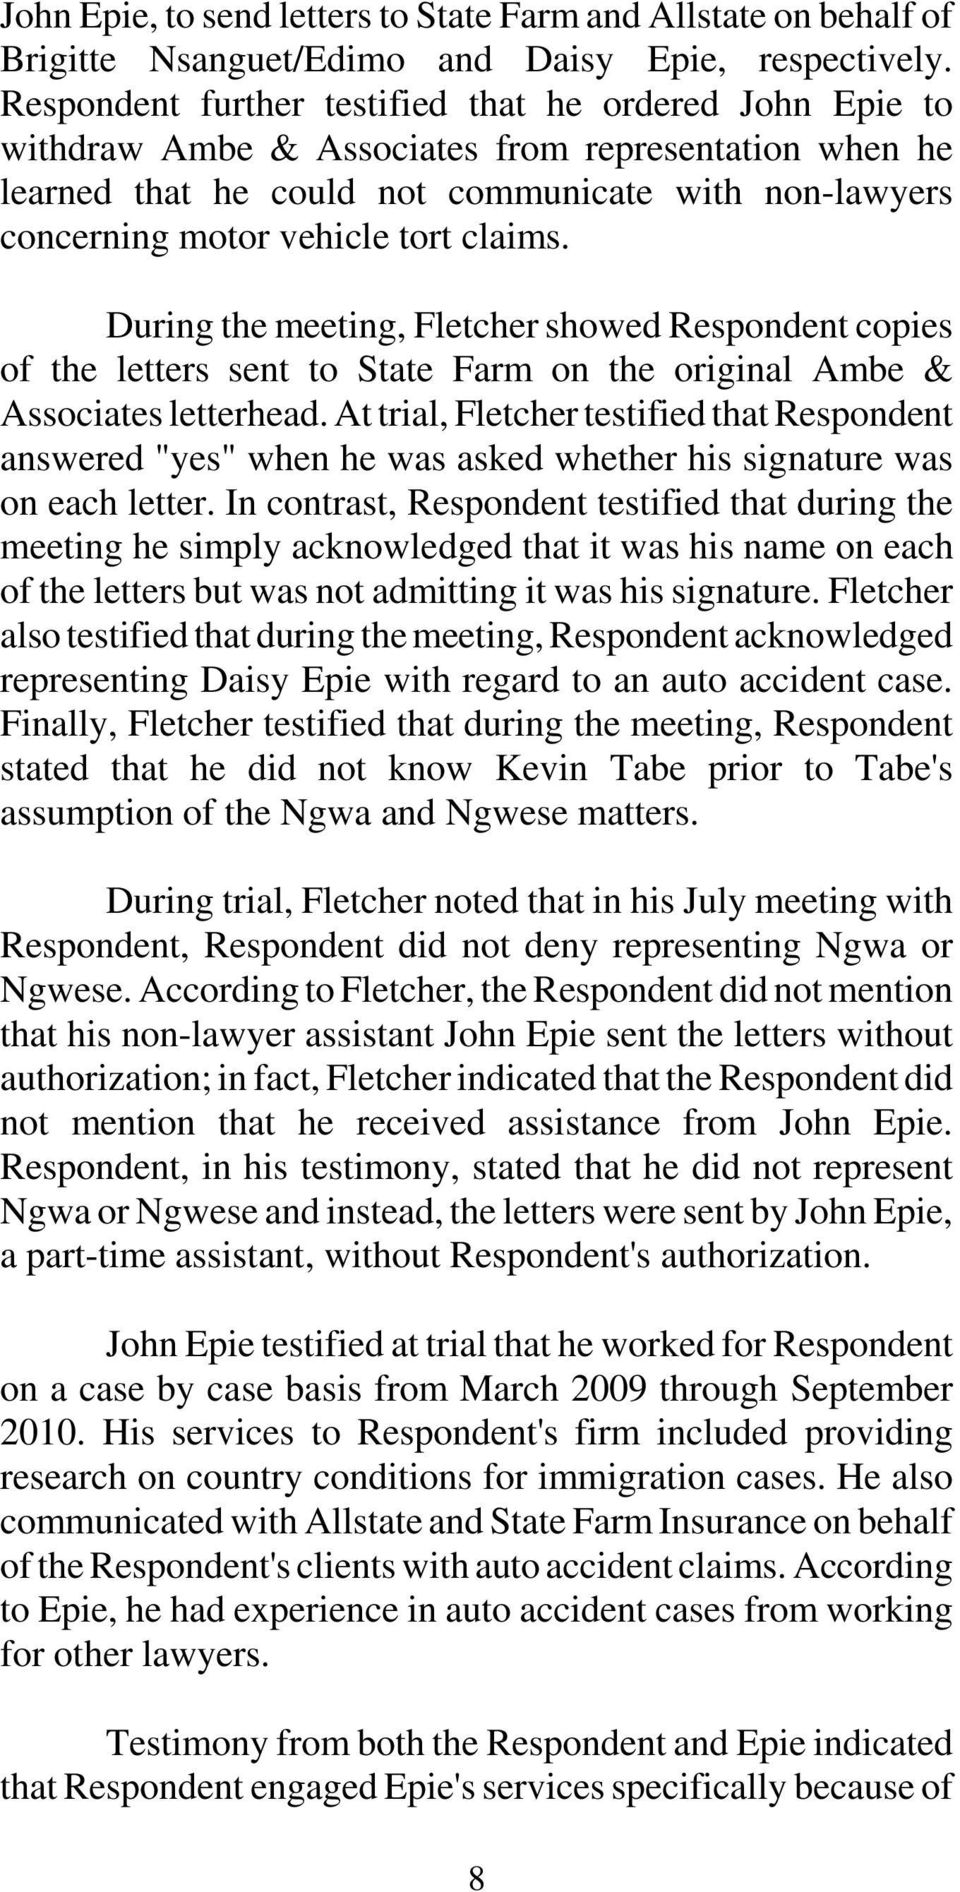 claims. During the meeting, Fletcher showed Respondent copies of the letters sent to State Farm on the original Ambe & Associates letterhead.